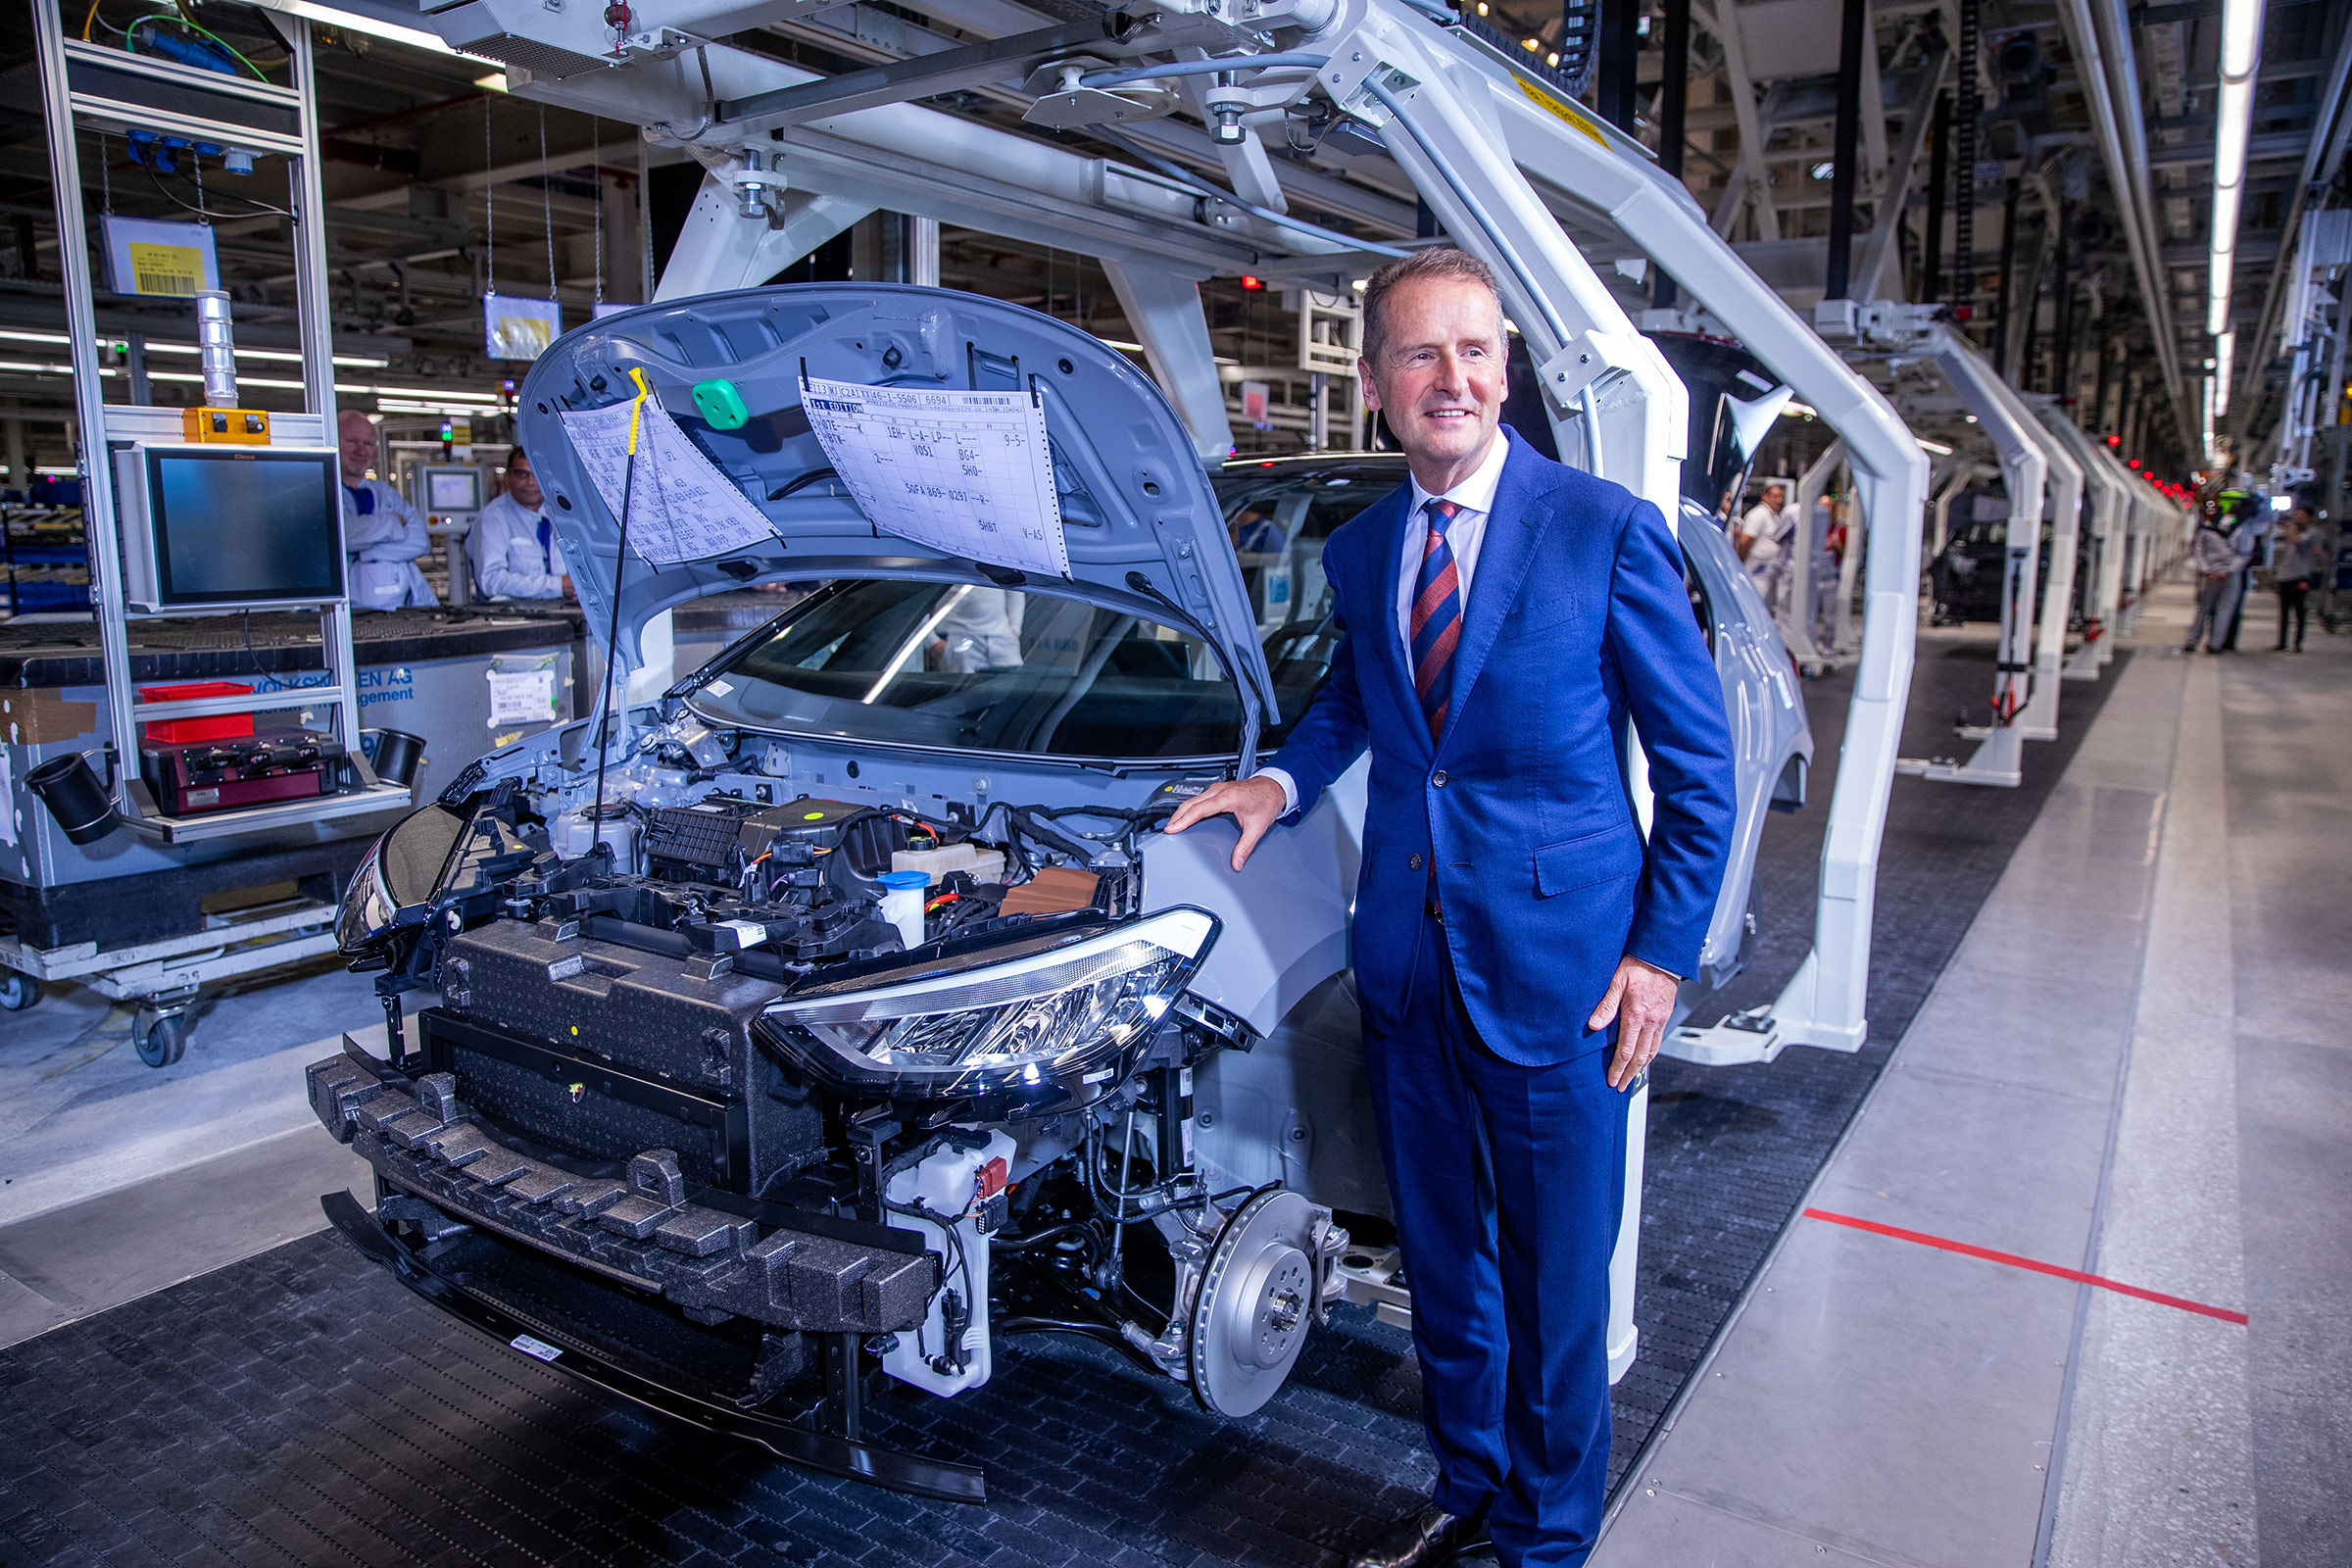 Herbert Diess, Volkswagen Group CEO, stands beside the assembly line for the production of the ID.3 electric car.